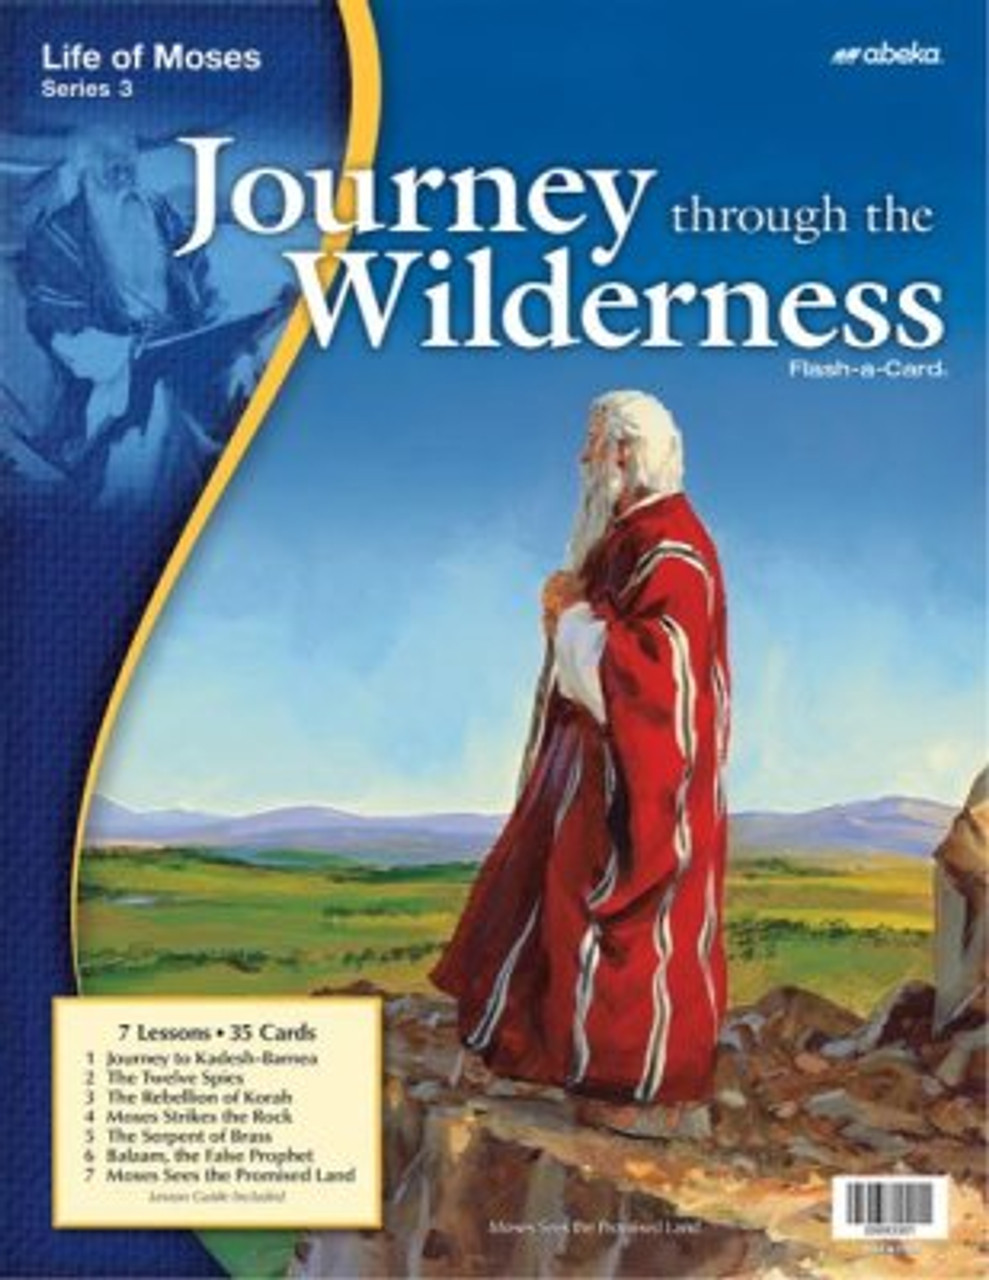 Journey through the Wilderness Life of Moses 3 (12x16)